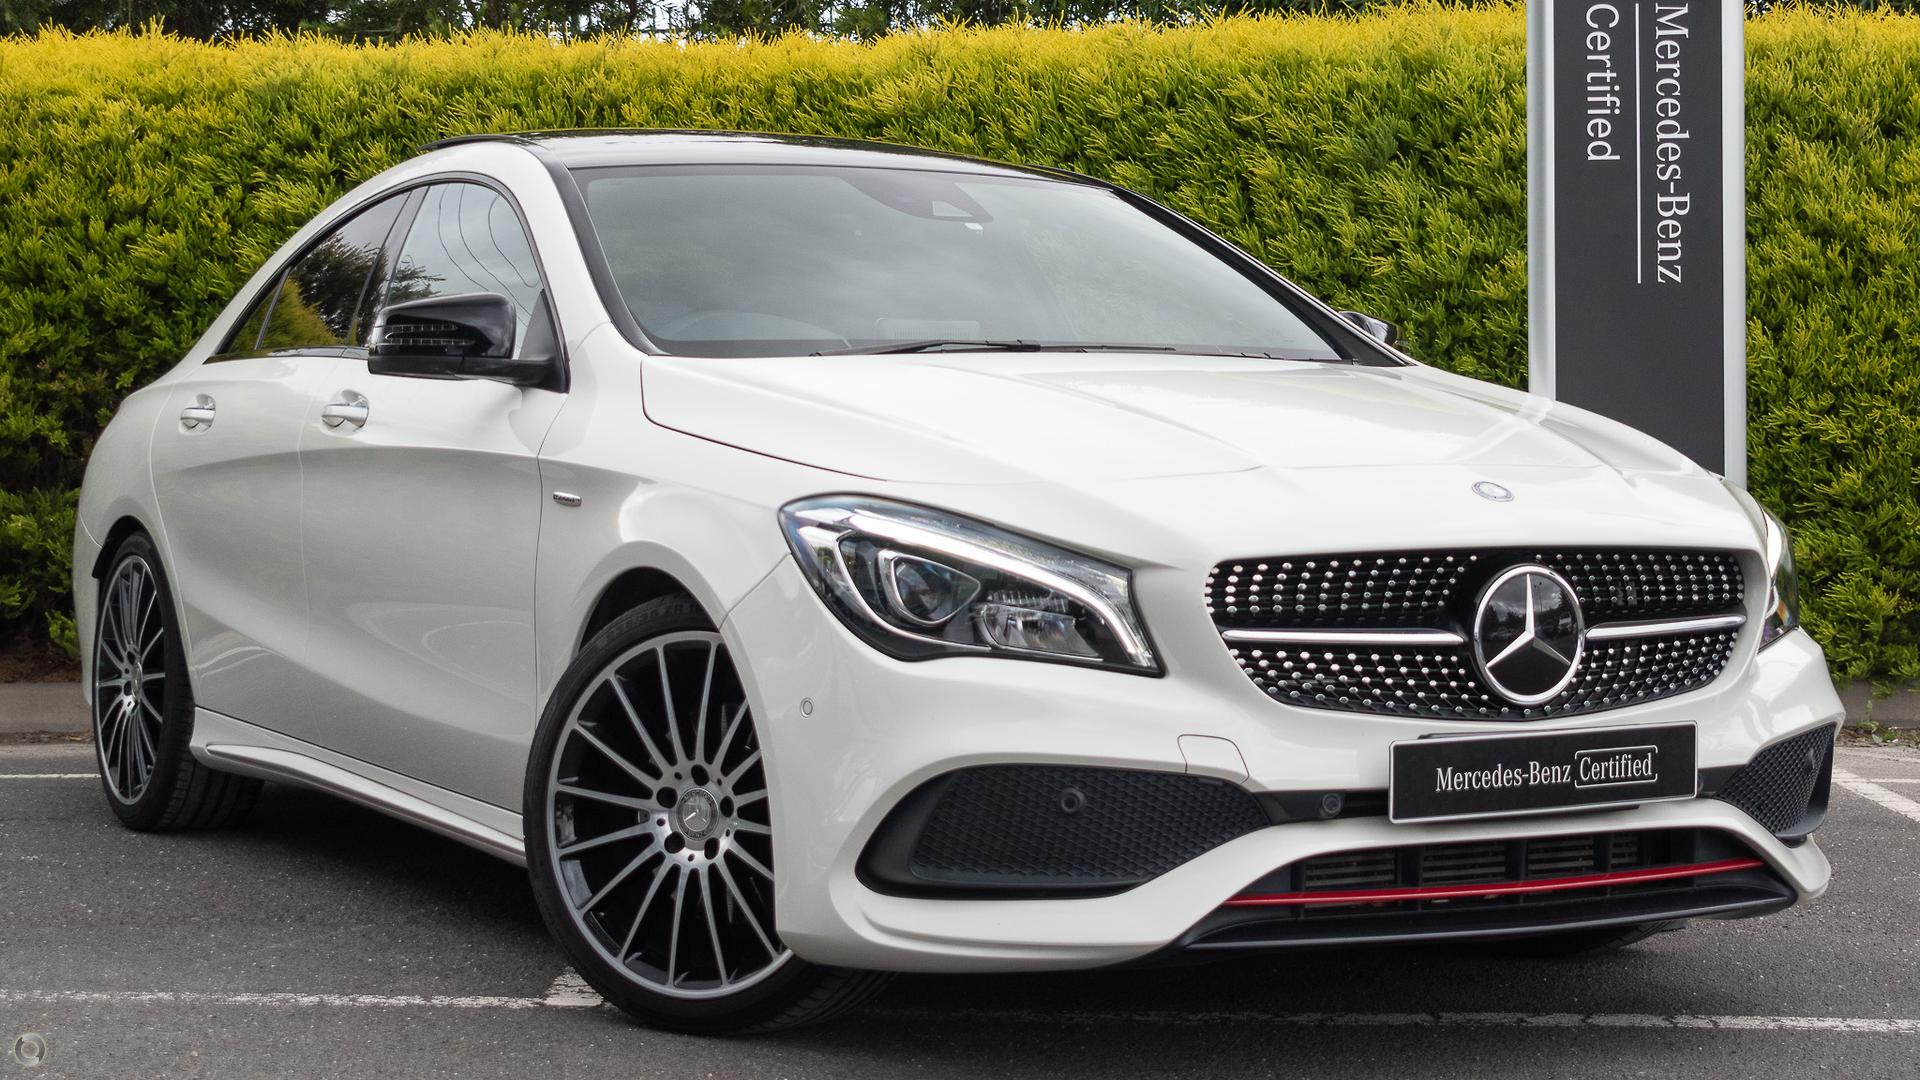 2016 Mercedes-Benz CLA 250 SPORT Coupe